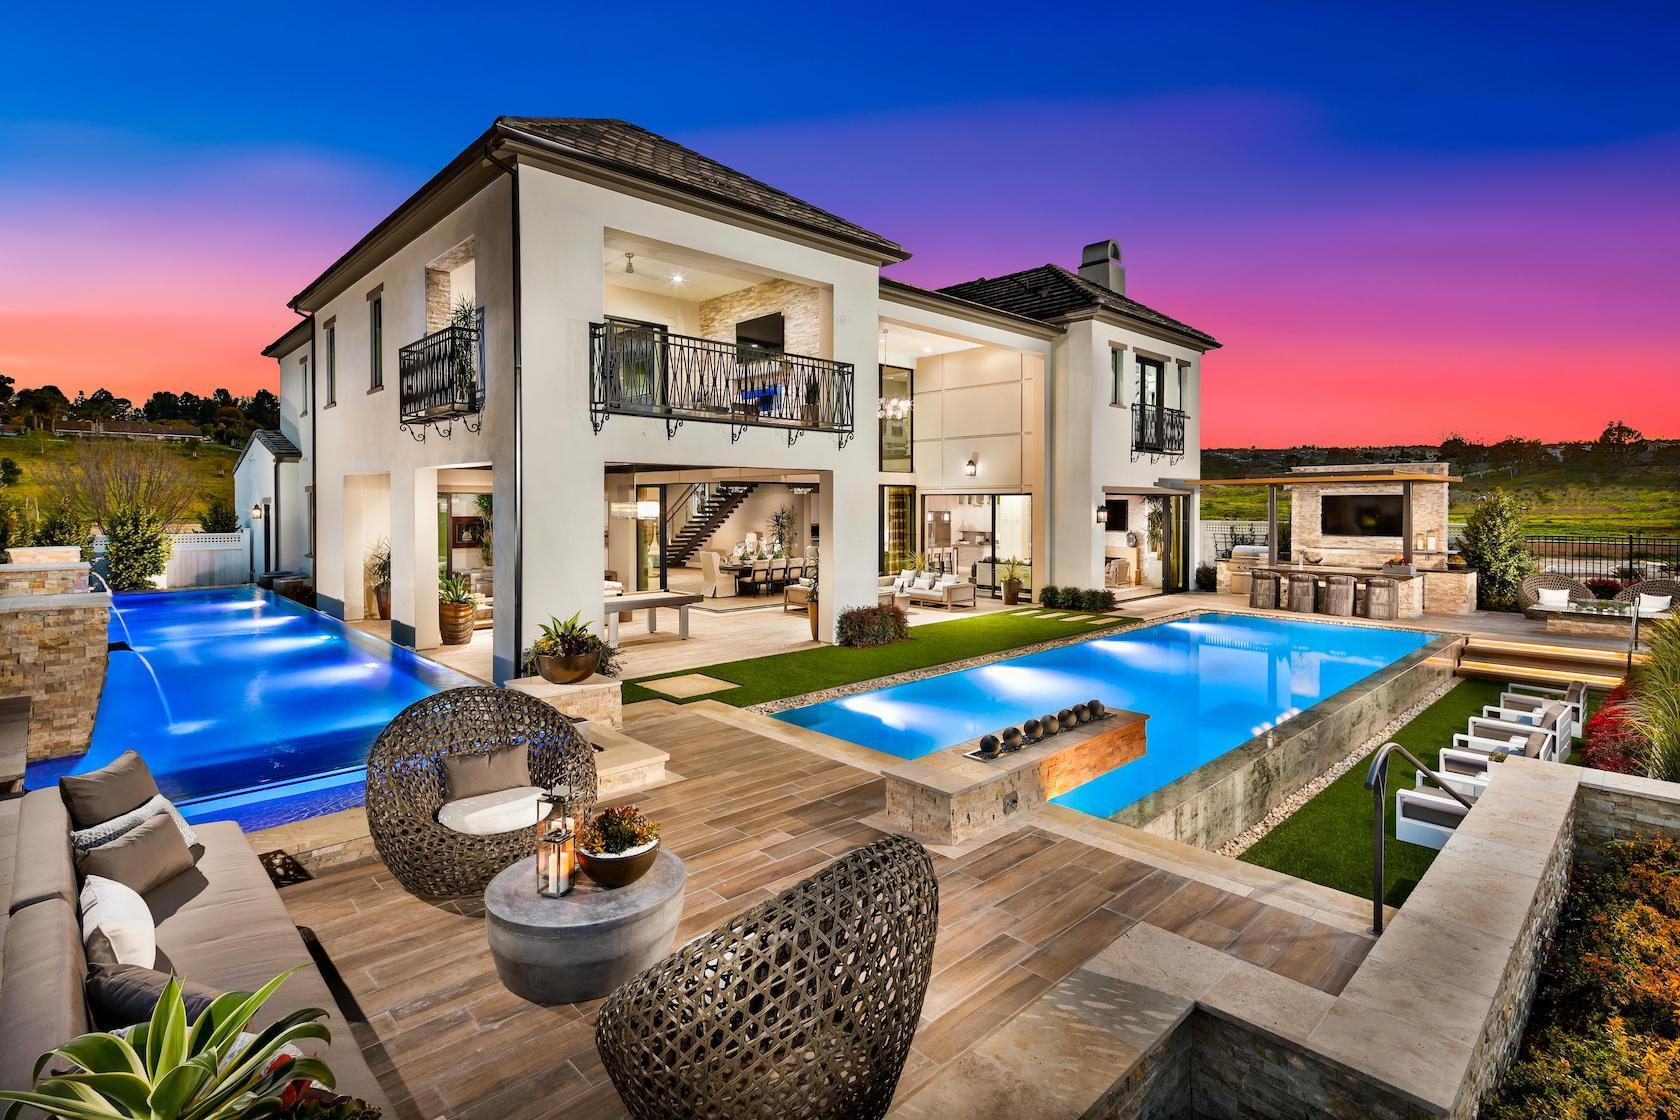 Vast backyard with sitting area, pool, bar and outdoor living space.